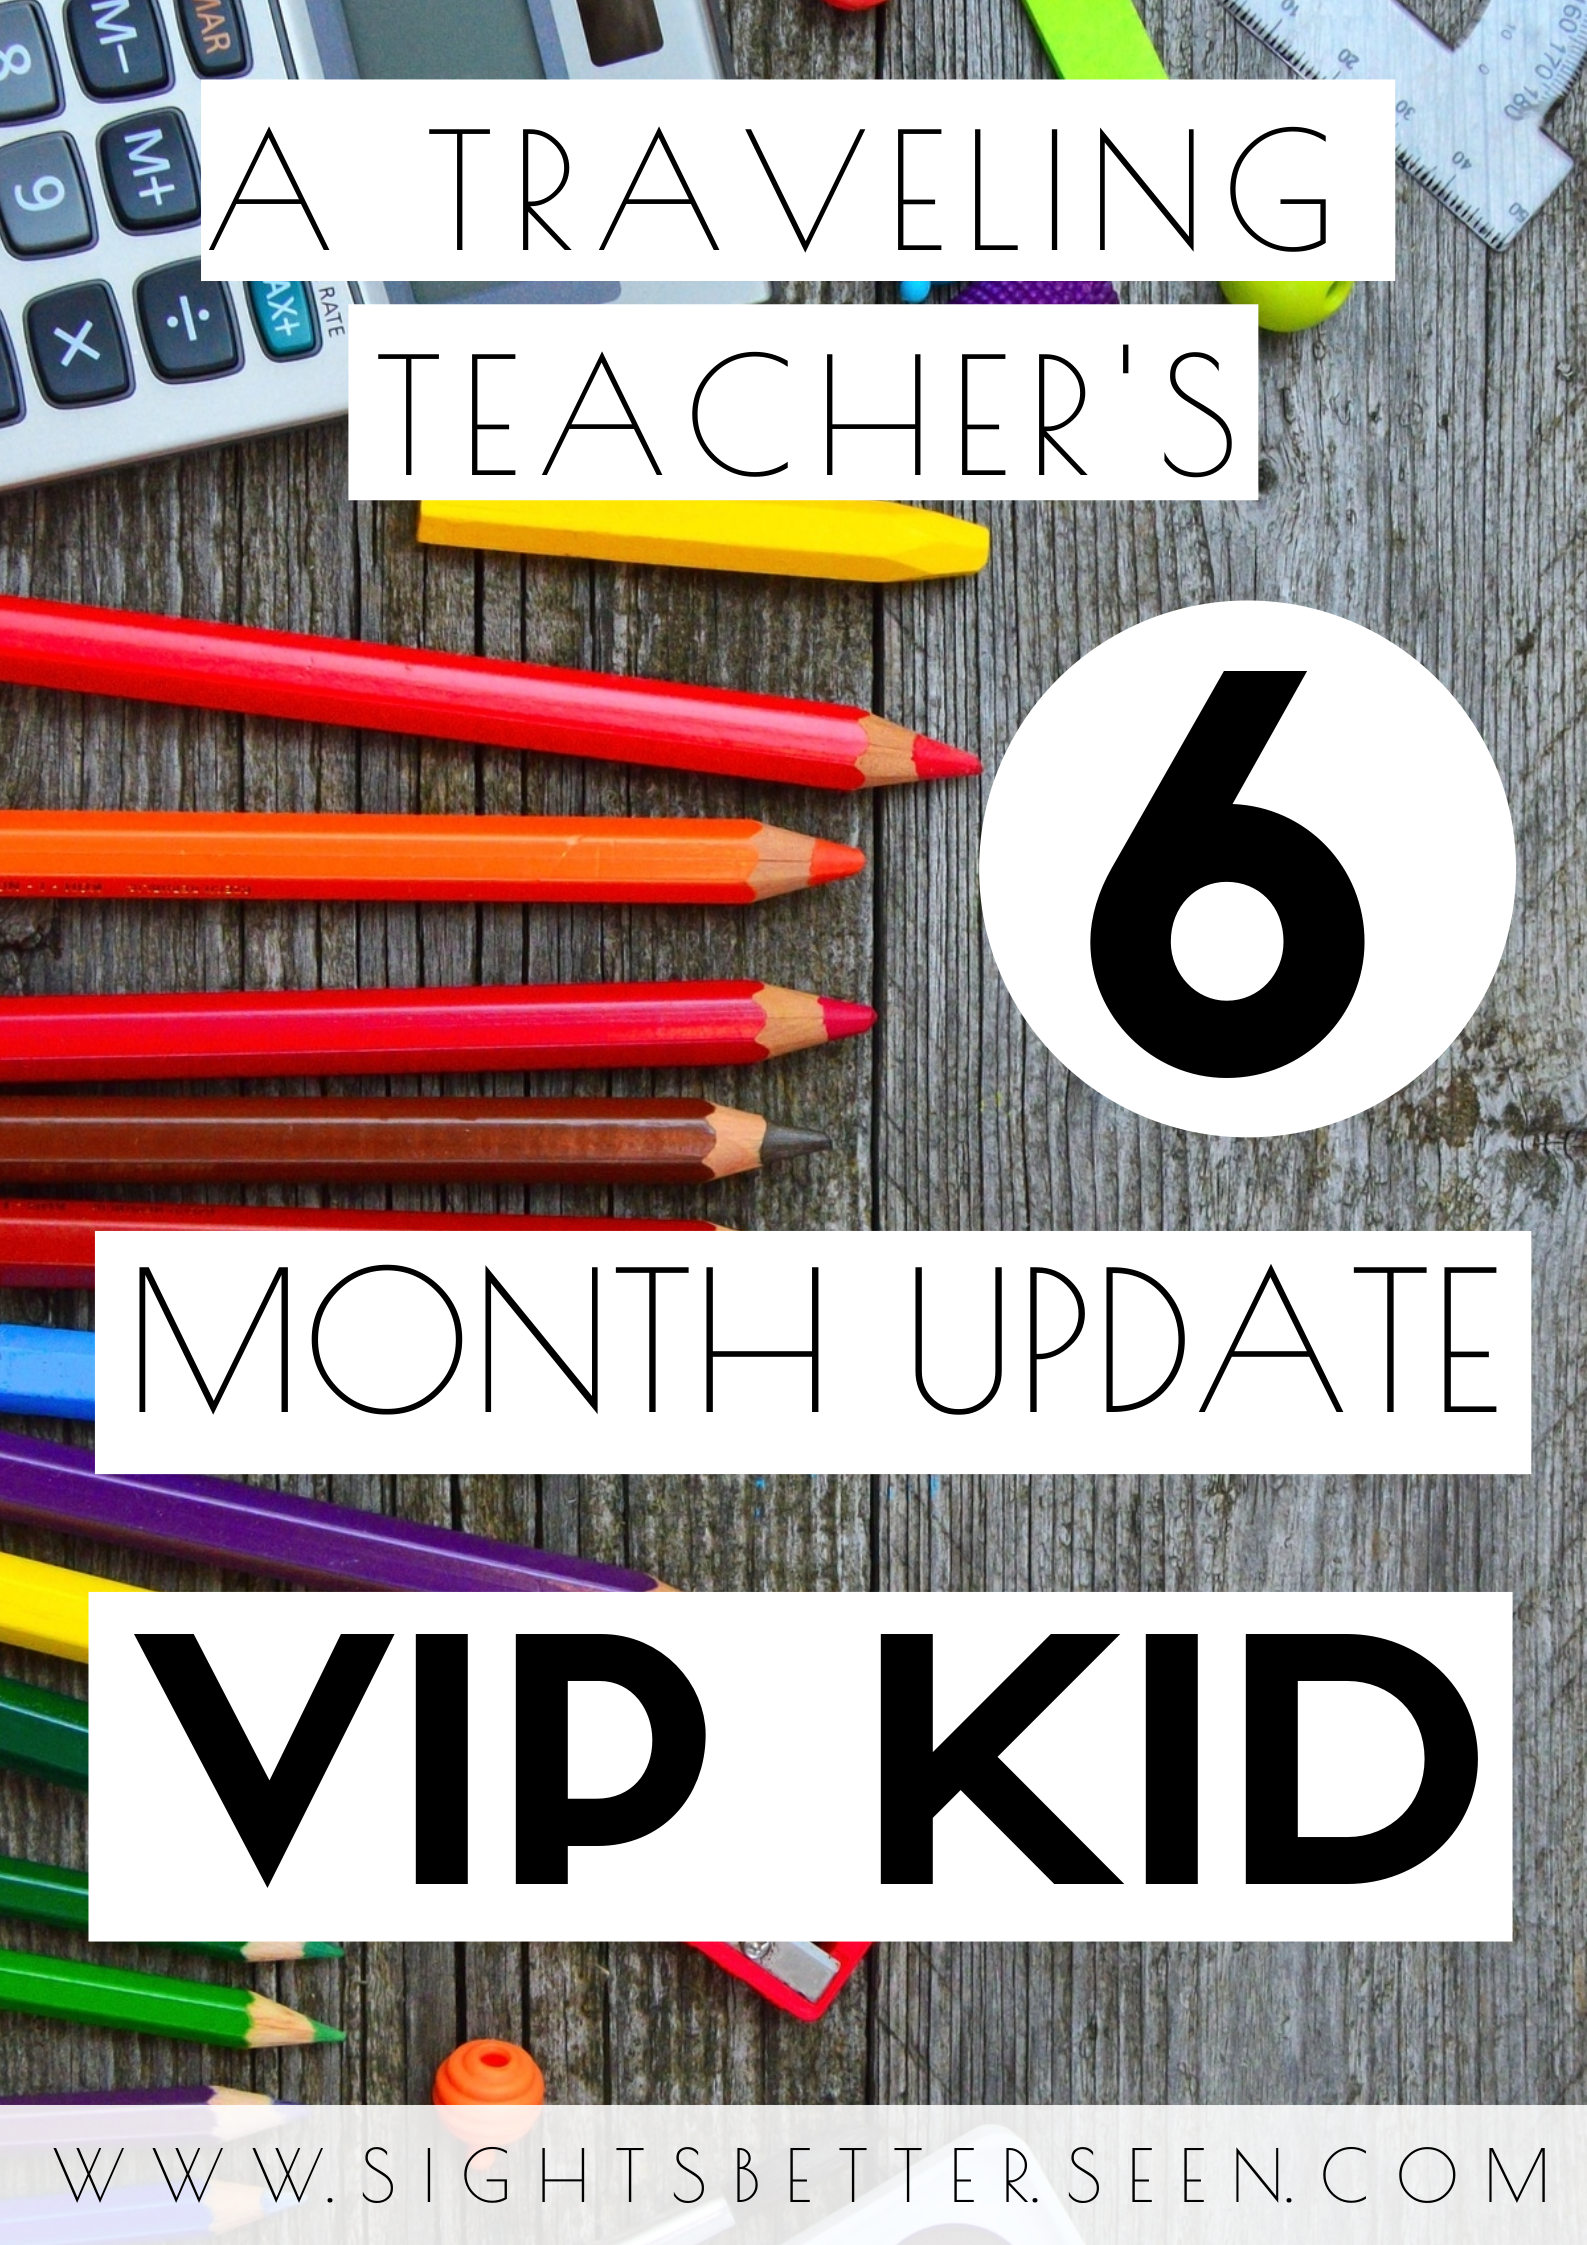 A traveling teacher's 6 month update working for VIP Kid, sharing tips and tricks for teaching English online as a digital nomad!